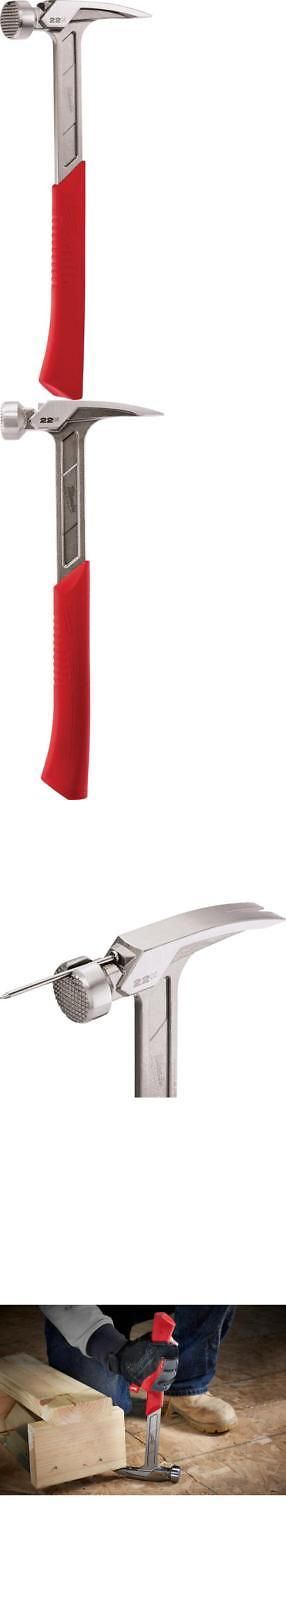 Hammers and Mallets 20763: Milwaukee 48-22-9022 22 Oz. Milled Face Framing Hammer -> BUY IT NOW ONLY: $41.49 on eBay!